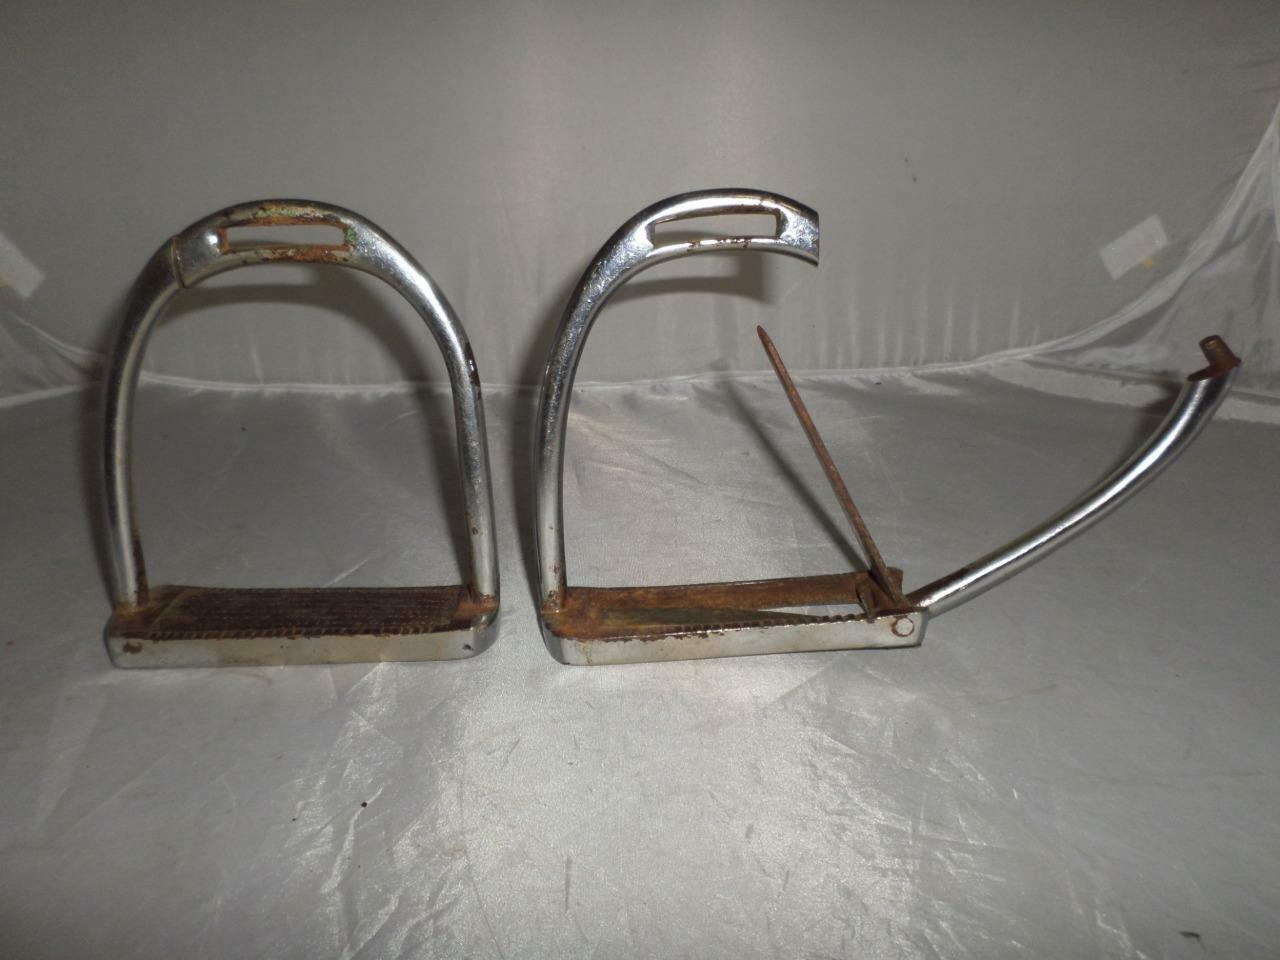 ANTIQUE SAFETY IRONS -FOOT RELEASE MECHANISM- POSSIBLY MILITARY  OR SIMILAR  cheapest